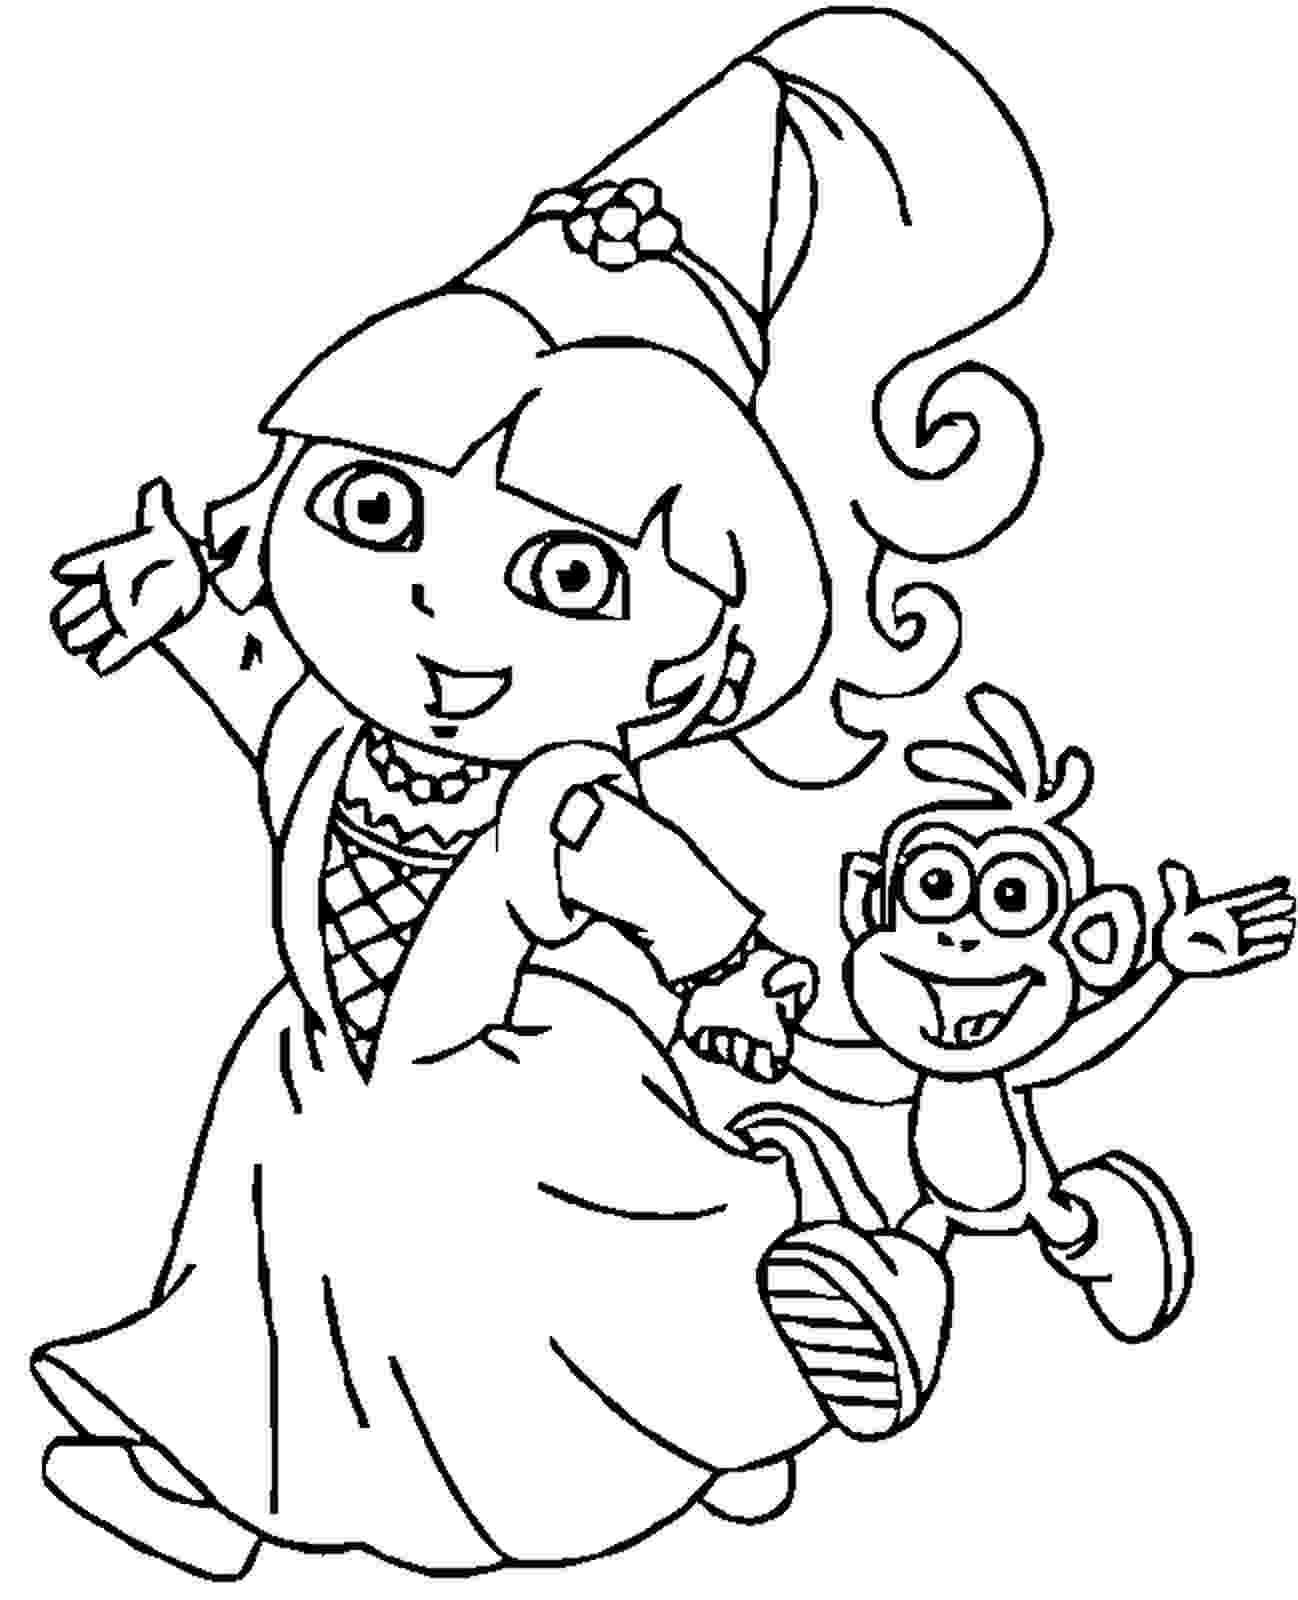 nick jr printable coloring pages top 10 paw patrol nick jr coloring pages coloring pages jr nick coloring printable pages